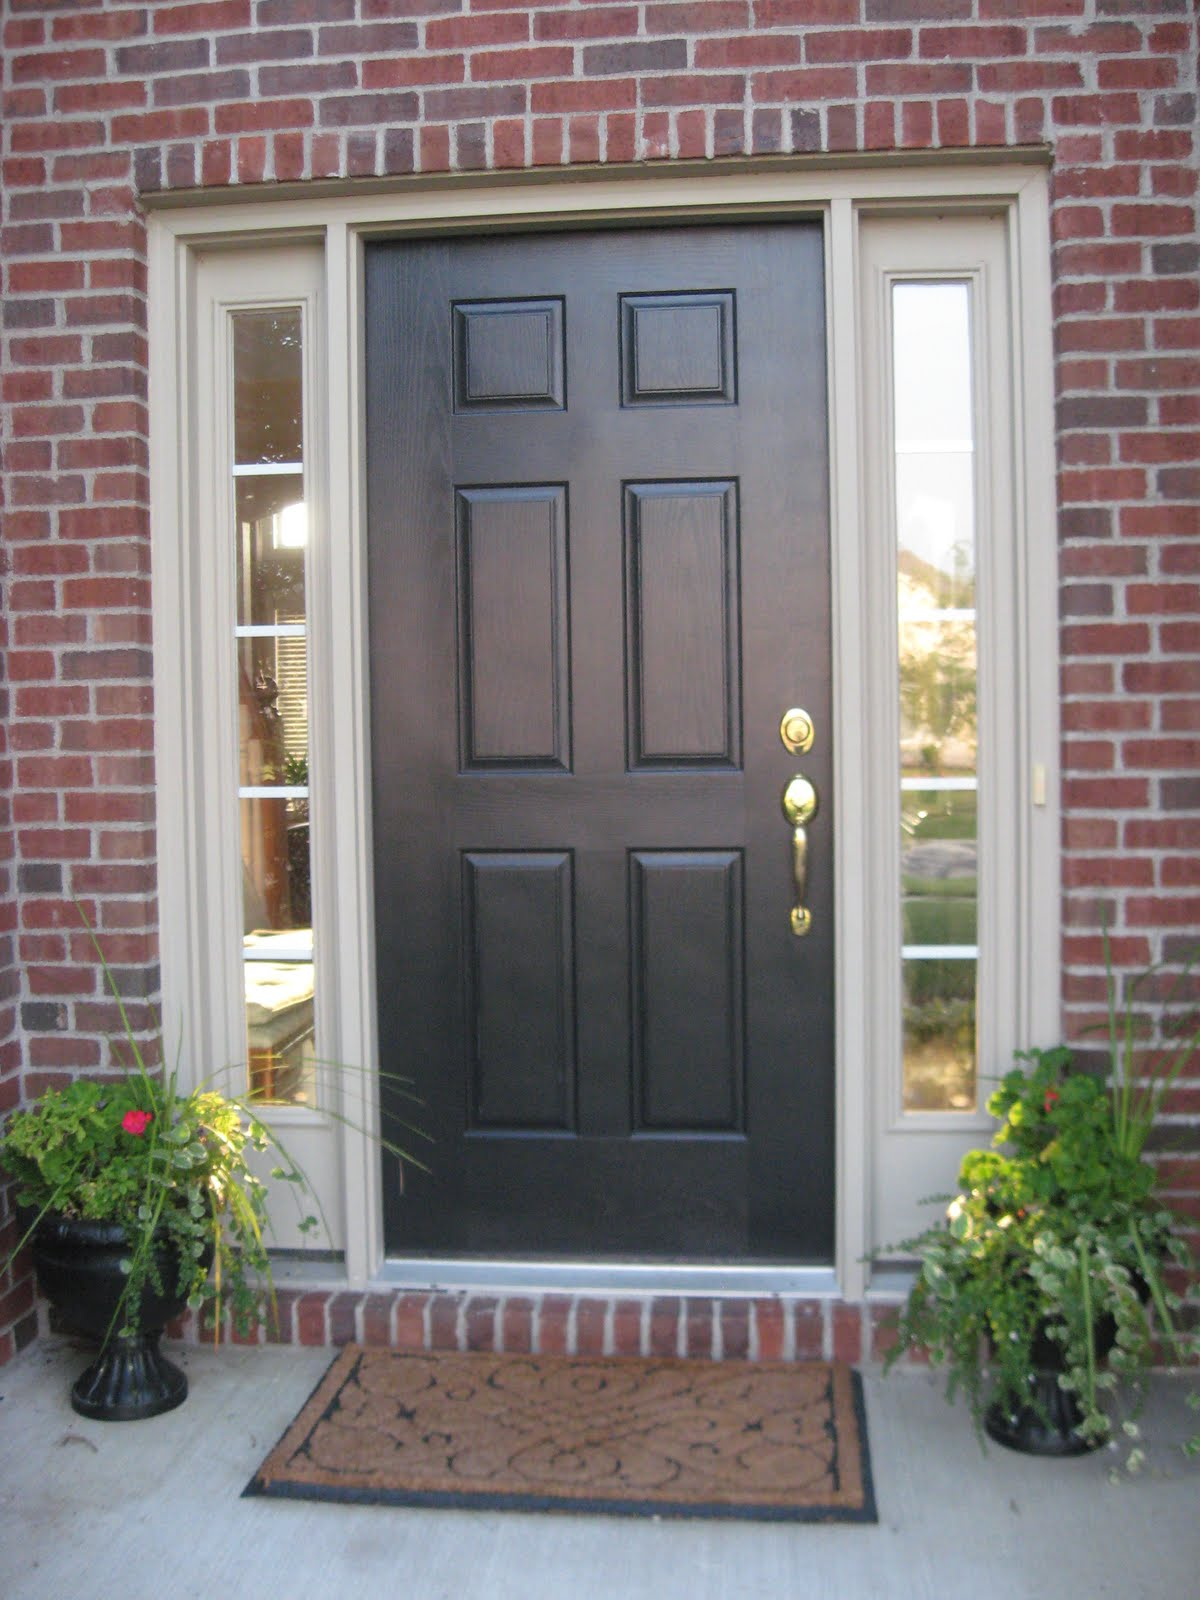 doors-marvellous-design-your-own-front-entry-door-design-your-own-front-door-uk-design-your-own-upvc-front-door-how-to-design-your-front-door-design-your-own-front-door-sign-design-your-own-fron